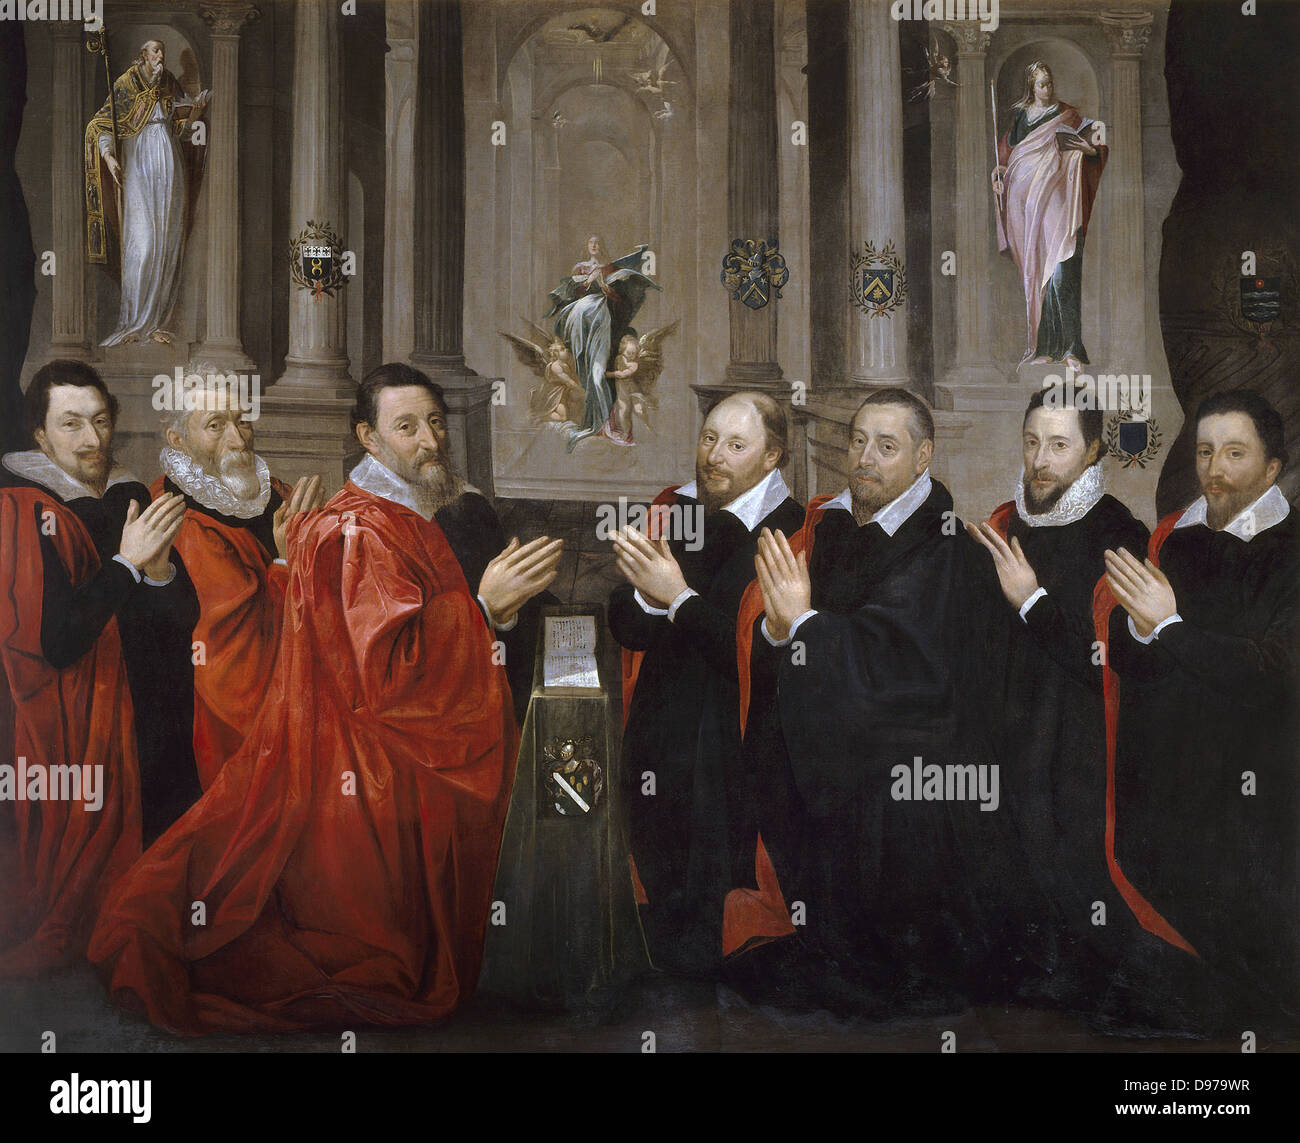 Georges Lallemand The provost of merchants 1611 Carnavalet Museum - Paris - Stock Image